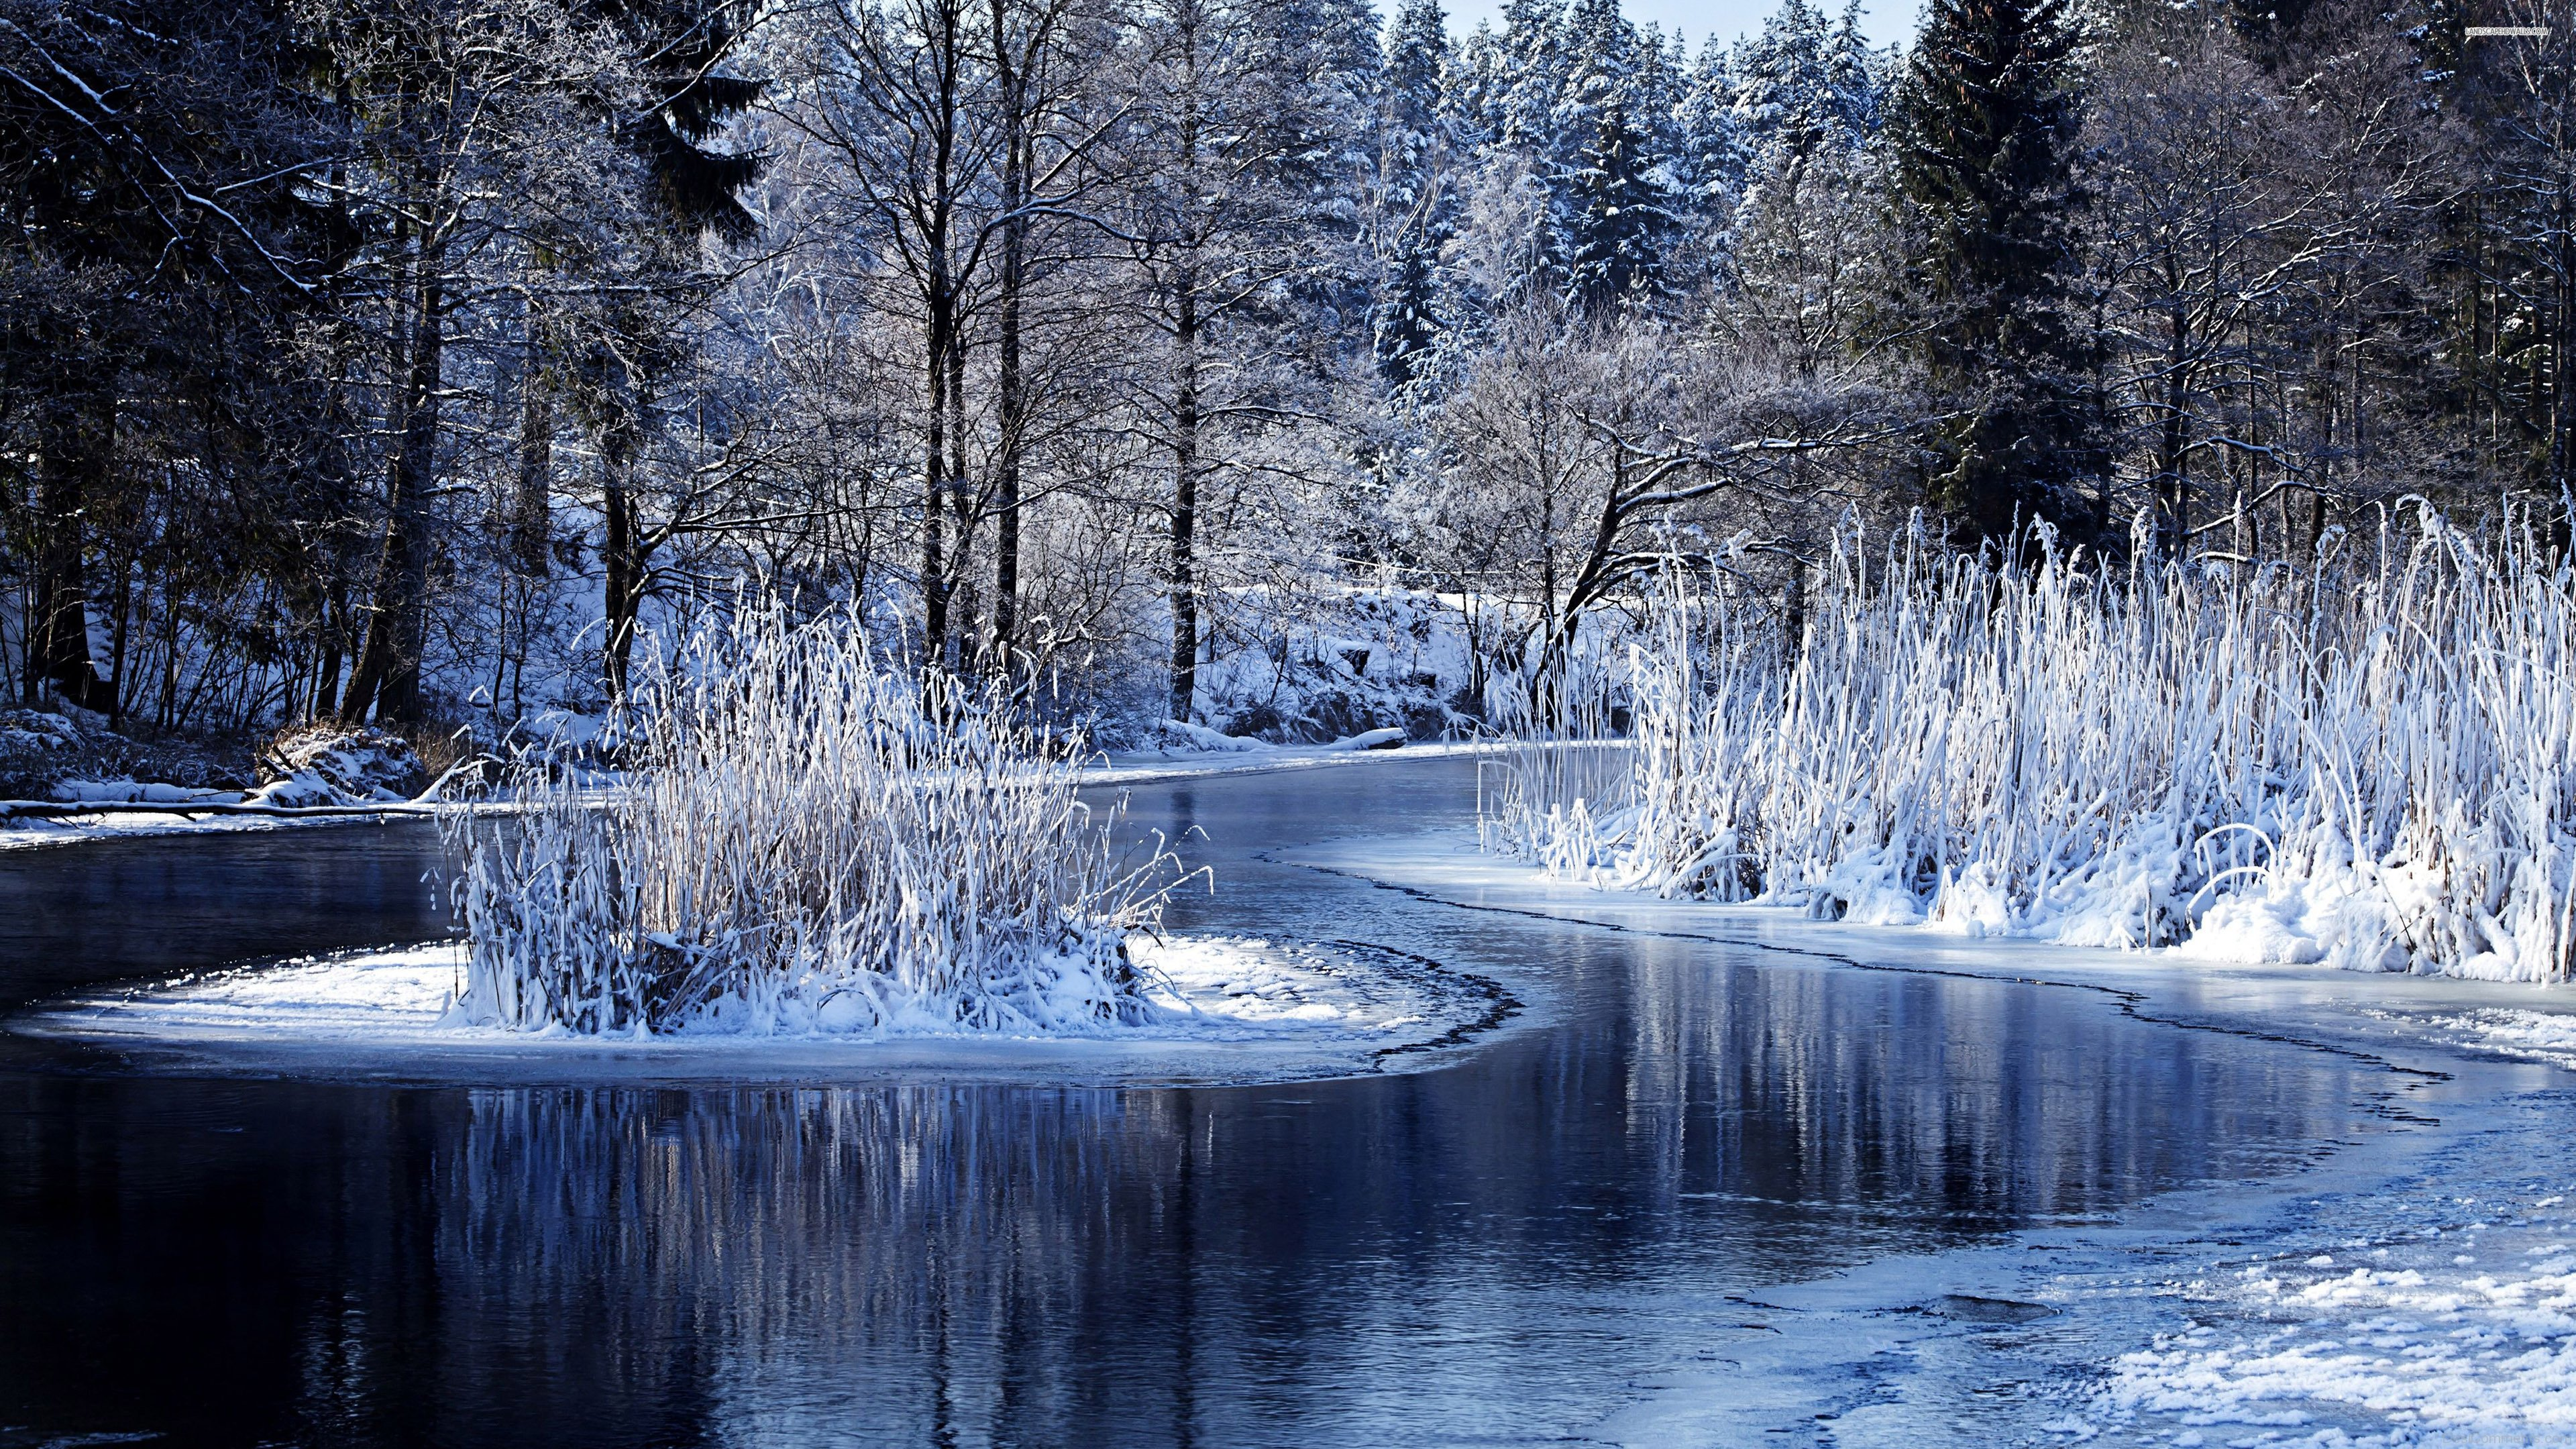 Beautiful Snow Falling Wallpapers Winter Pictures Images Graphics For Facebook Whatsapp